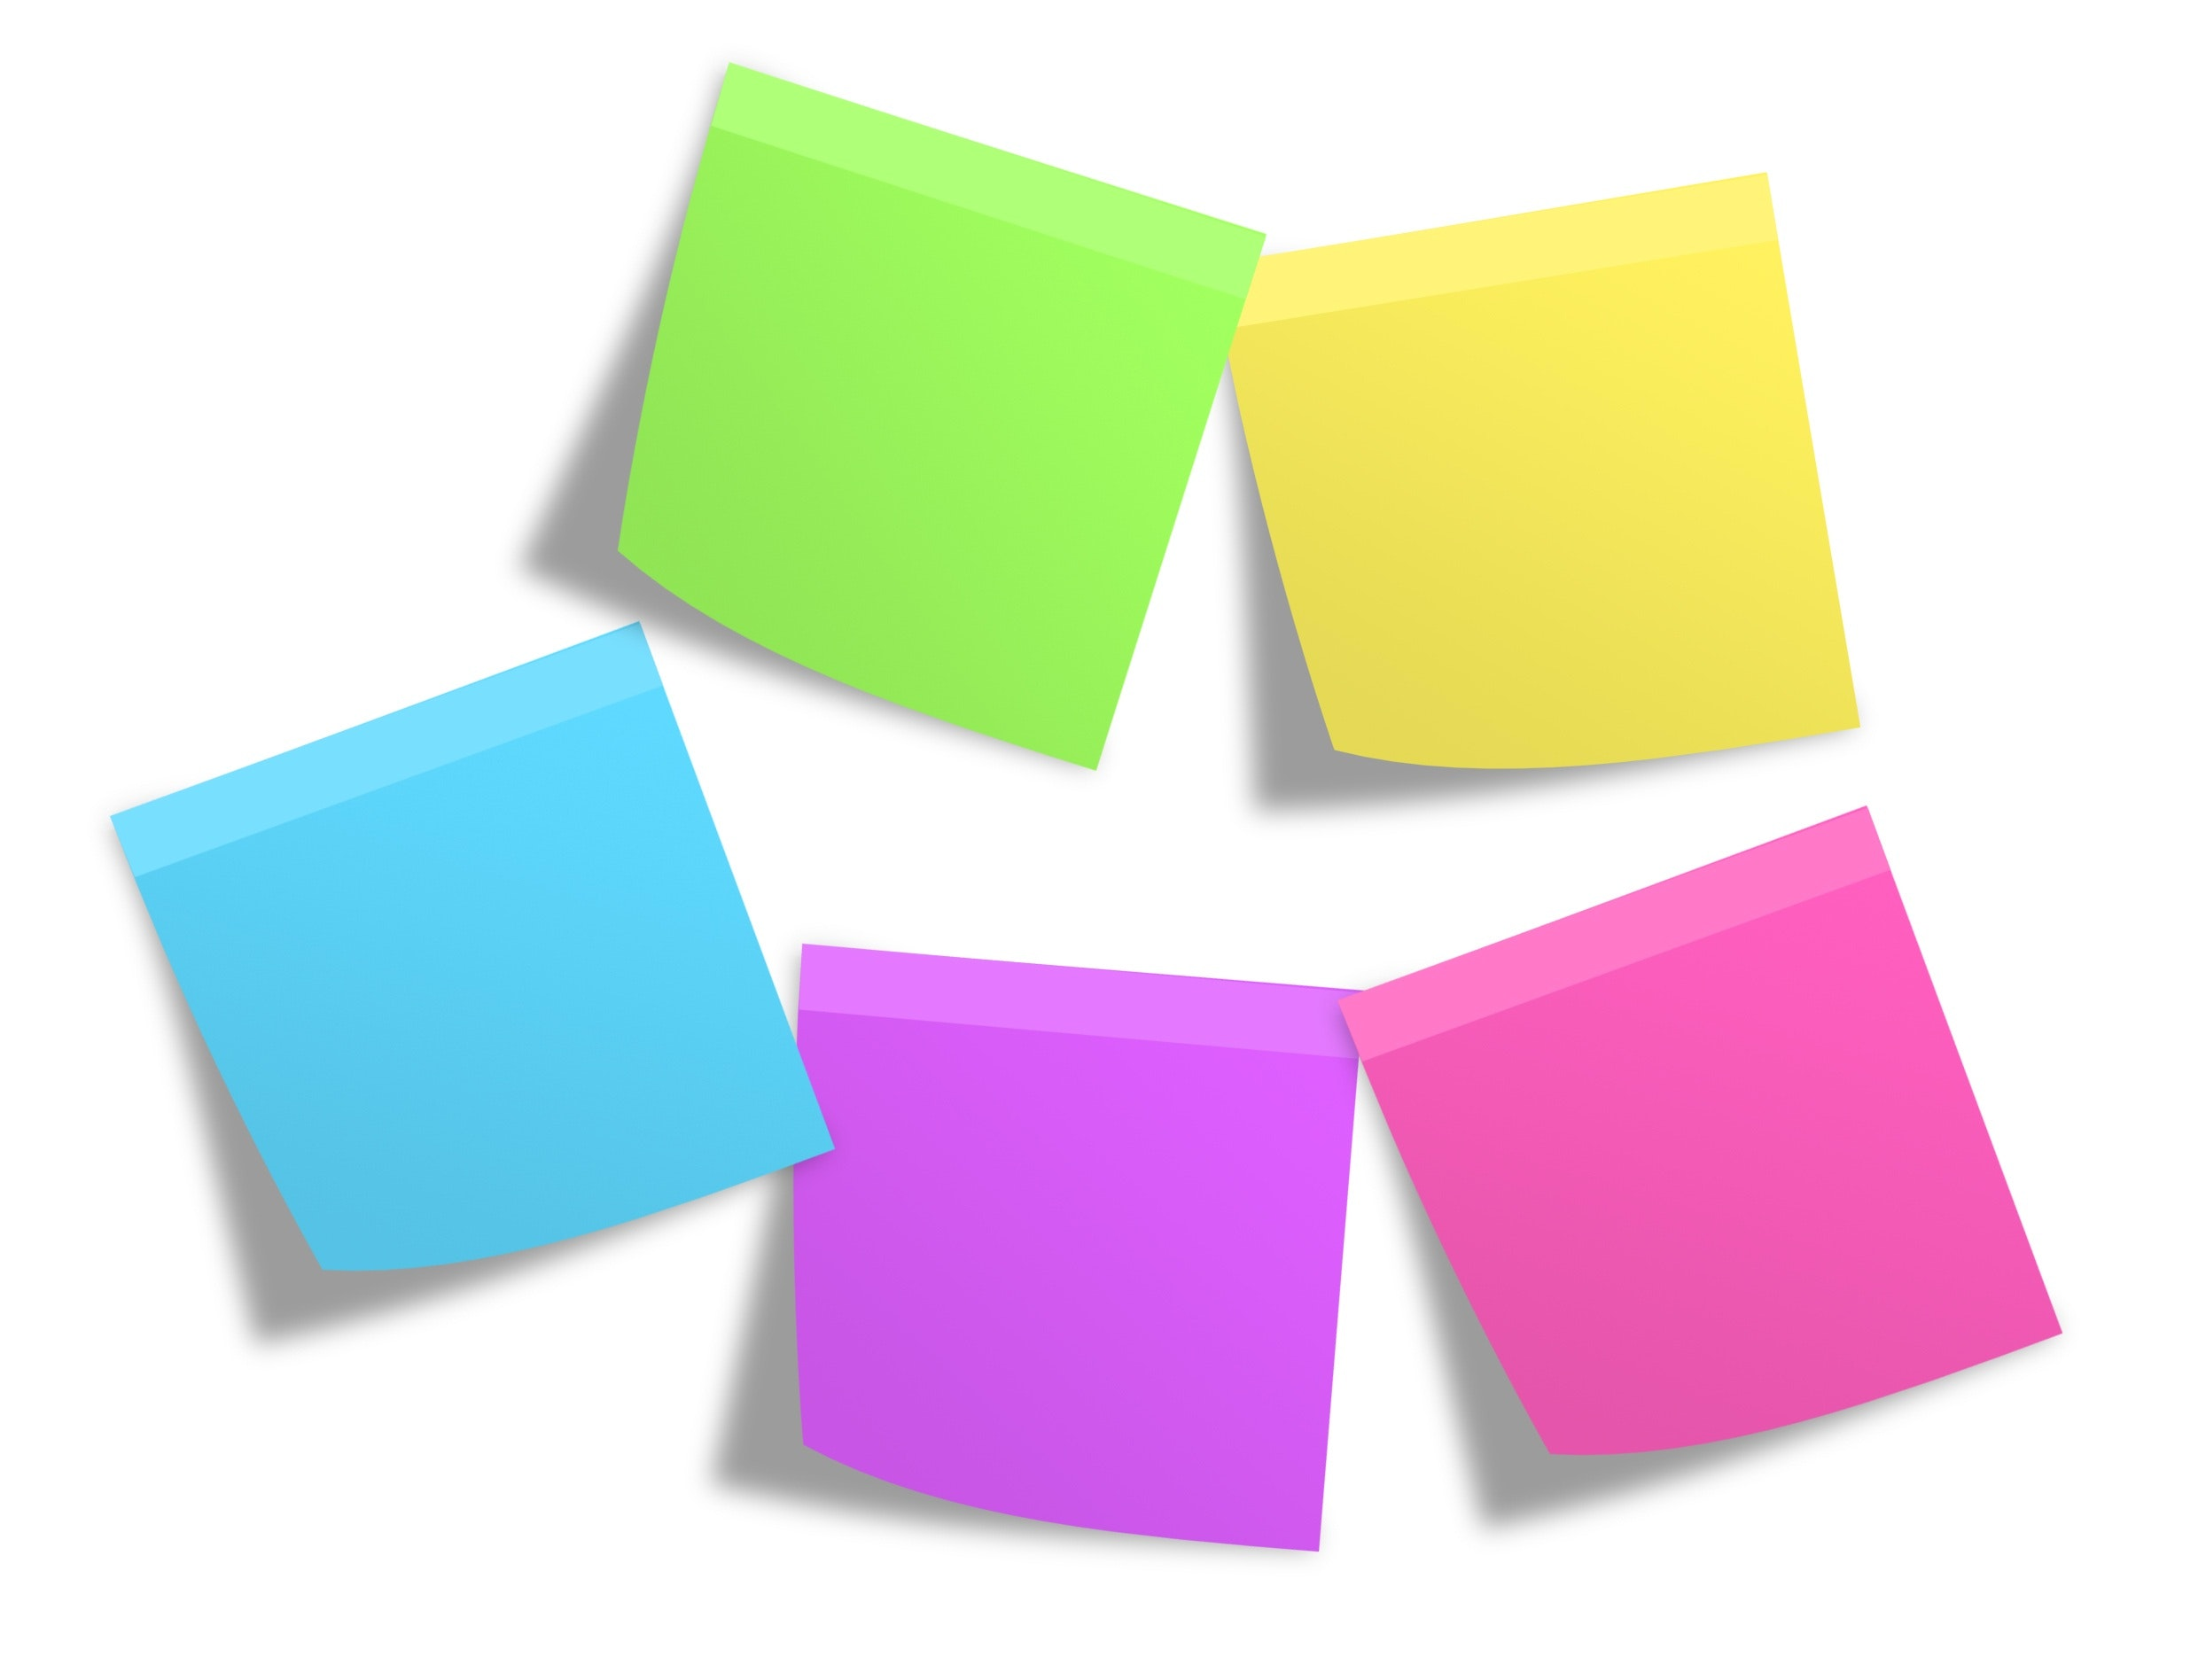 Pink Green Yellow Blue and Purple Sticky Note Mounted on White Painted Wall, Blank, Pad, Stationery, Square, HQ Photo